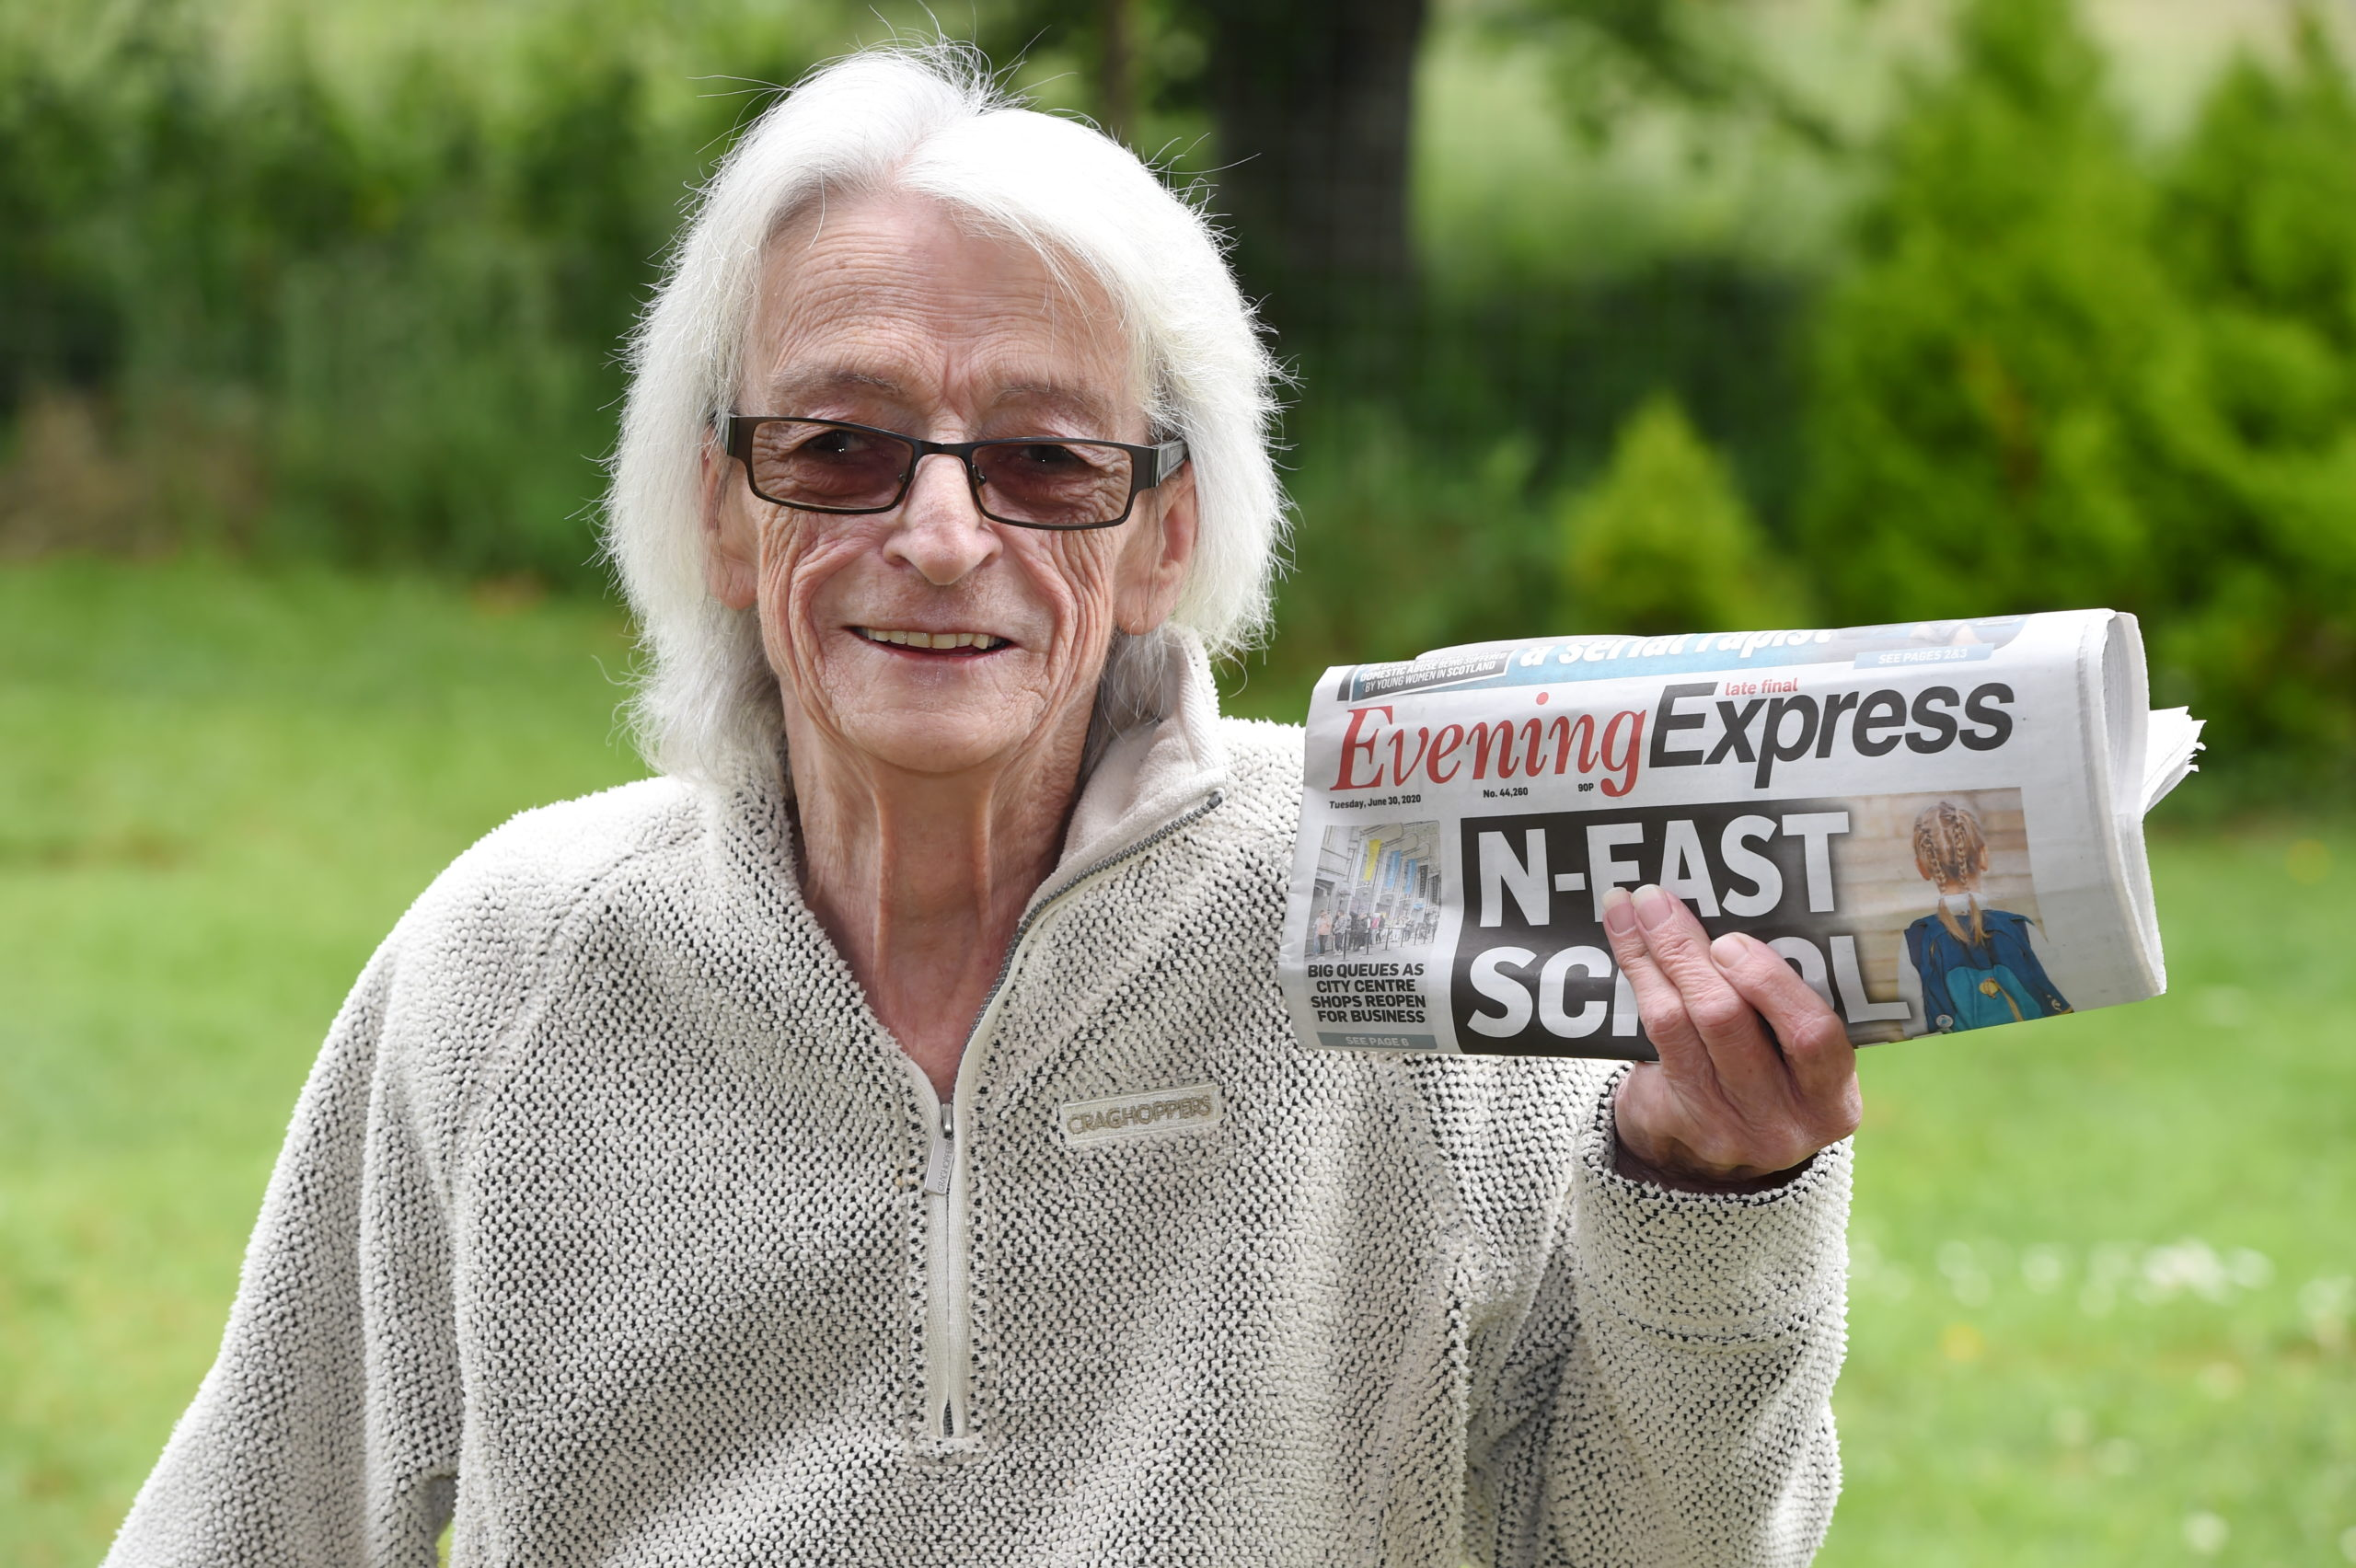 CR0022123 Evening Express bingo winner Helen Pirie, who has won £250.  Picture by Kenny Elrick     30/06/2020